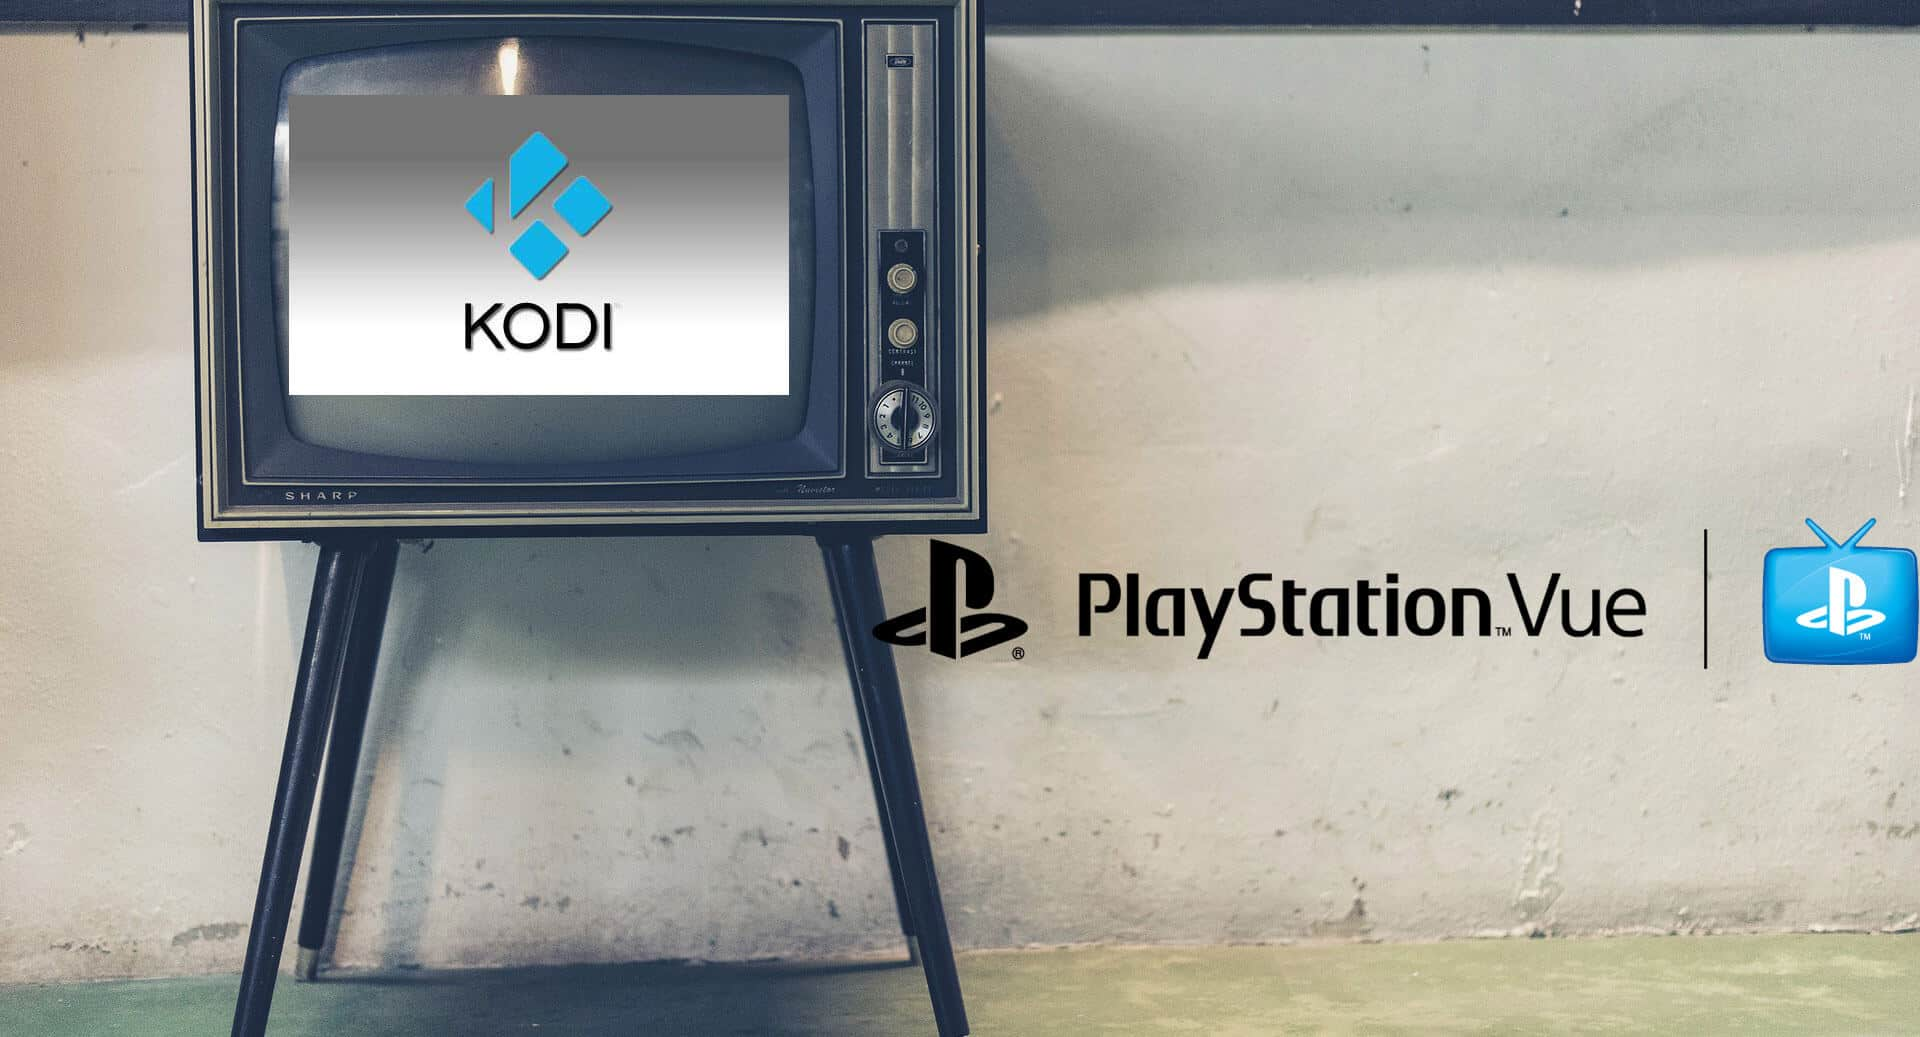 How to install PS Vue on Kodi